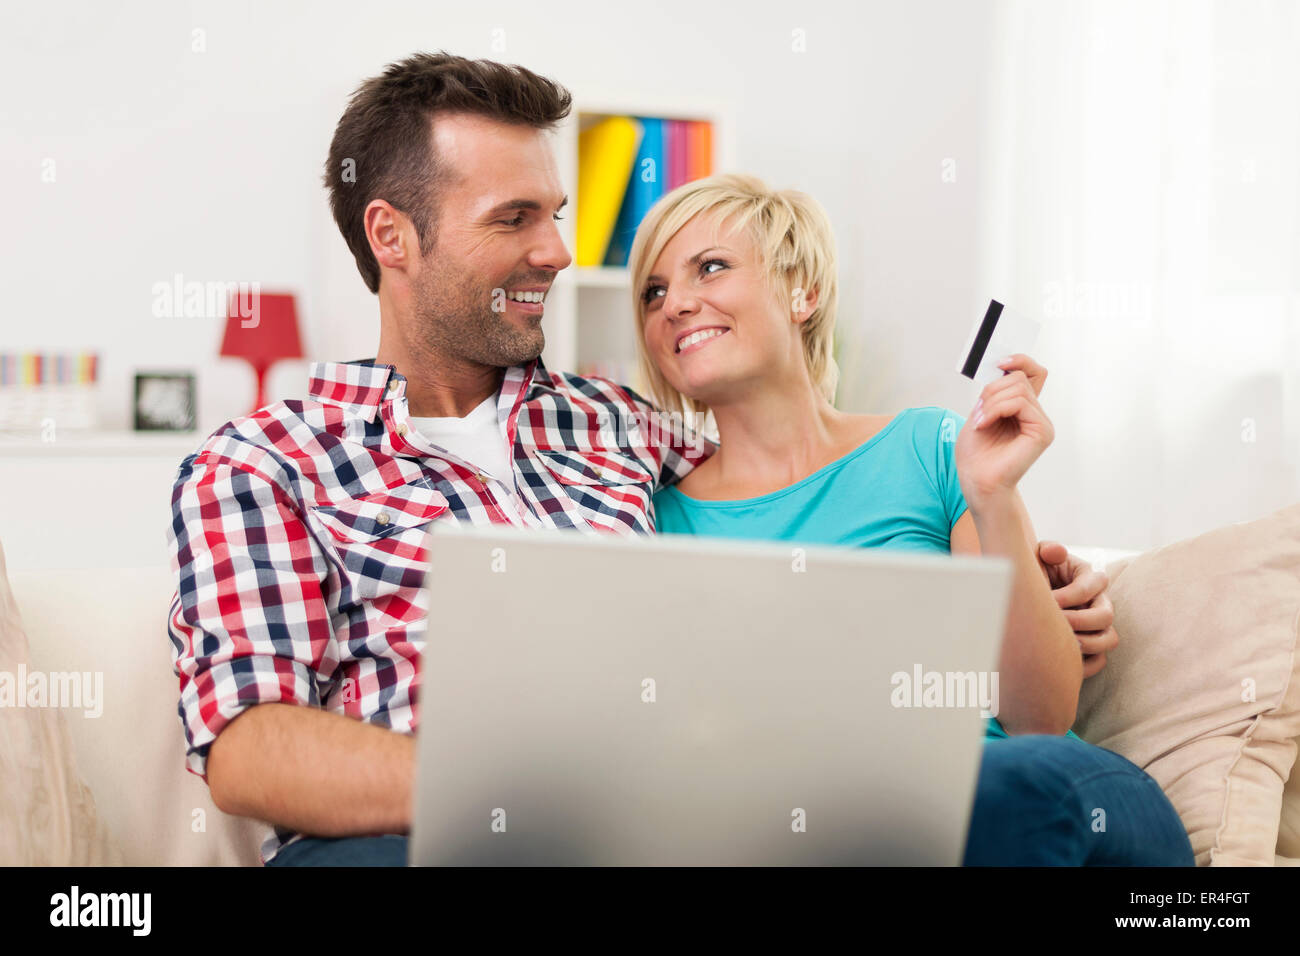 Couple shopping online together - Stock Image